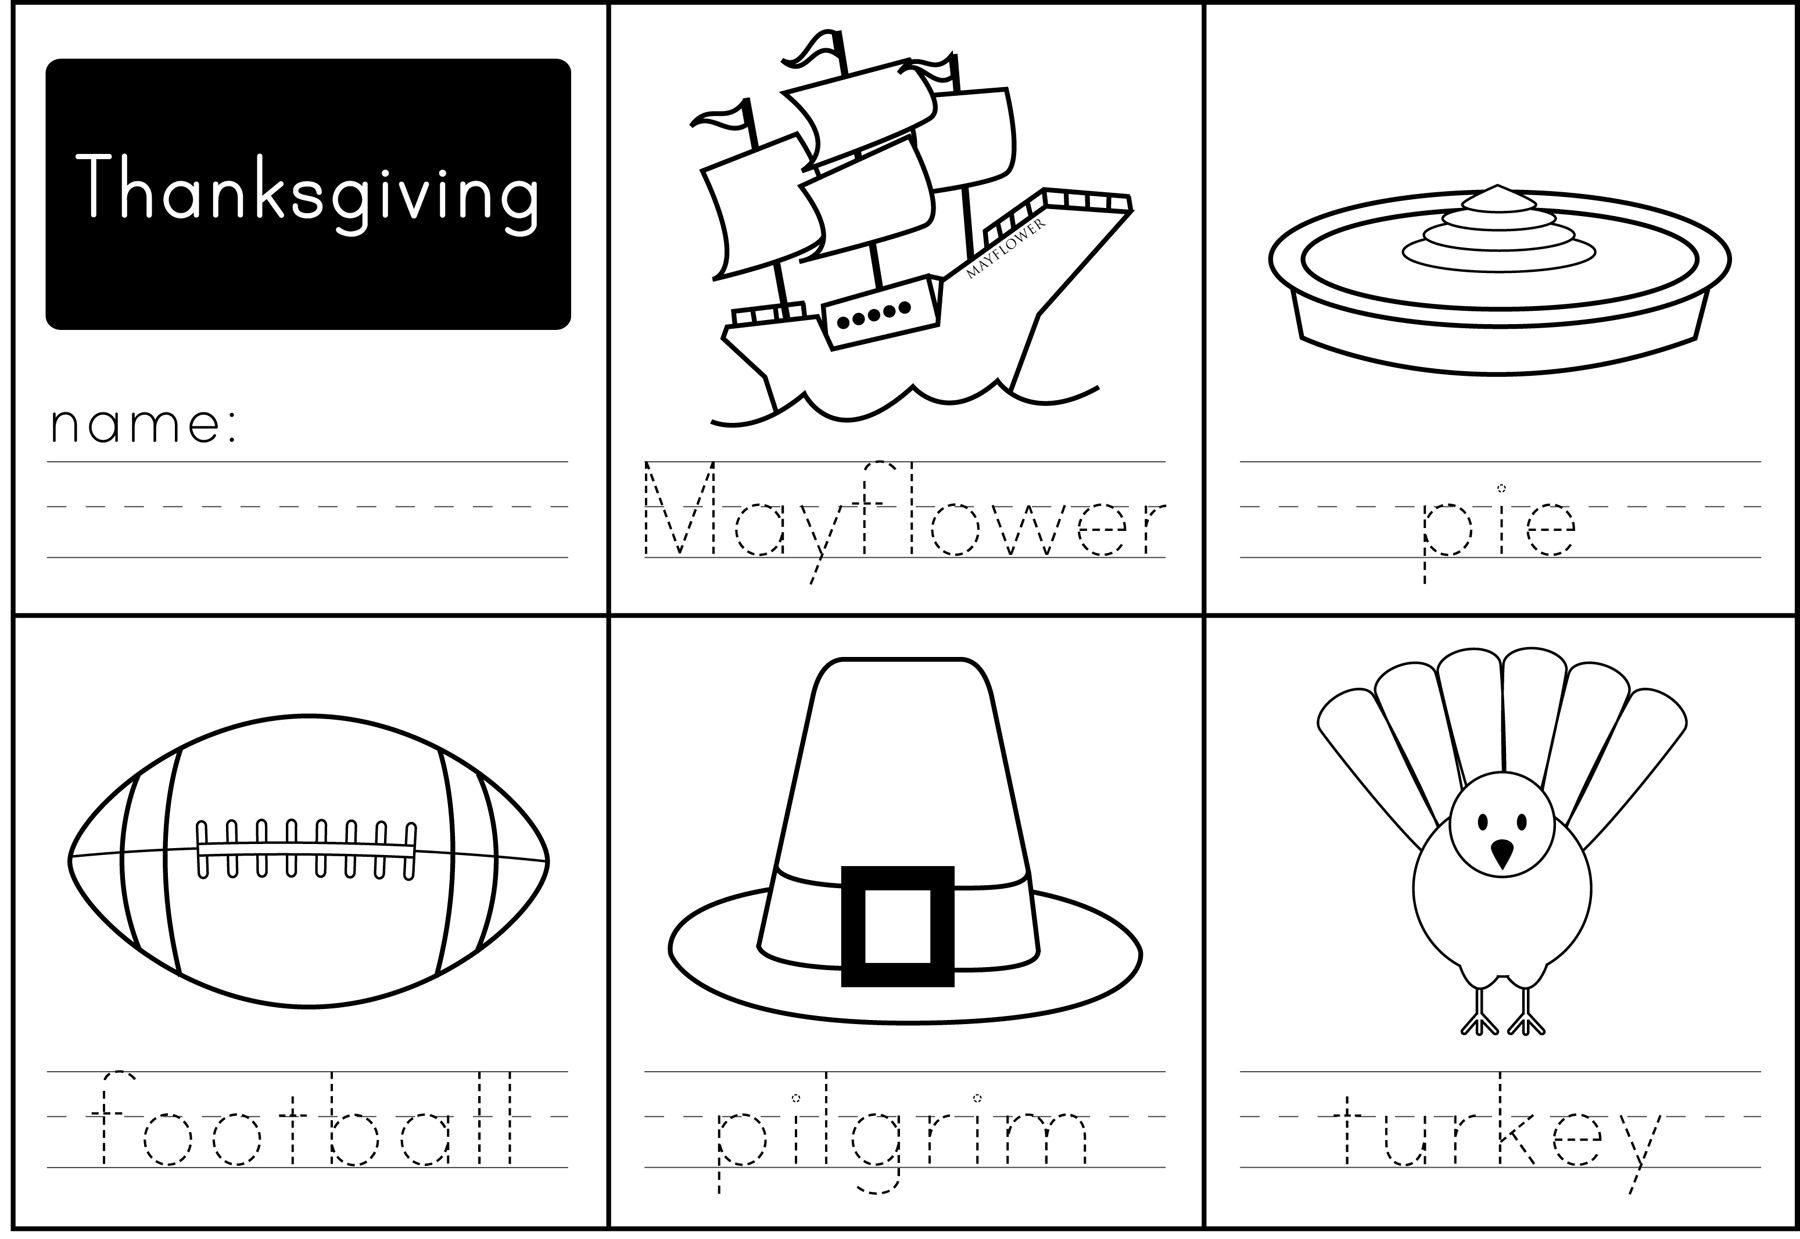 Thanksgiving homework sheets – Kindergarten Thanksgiving Worksheet